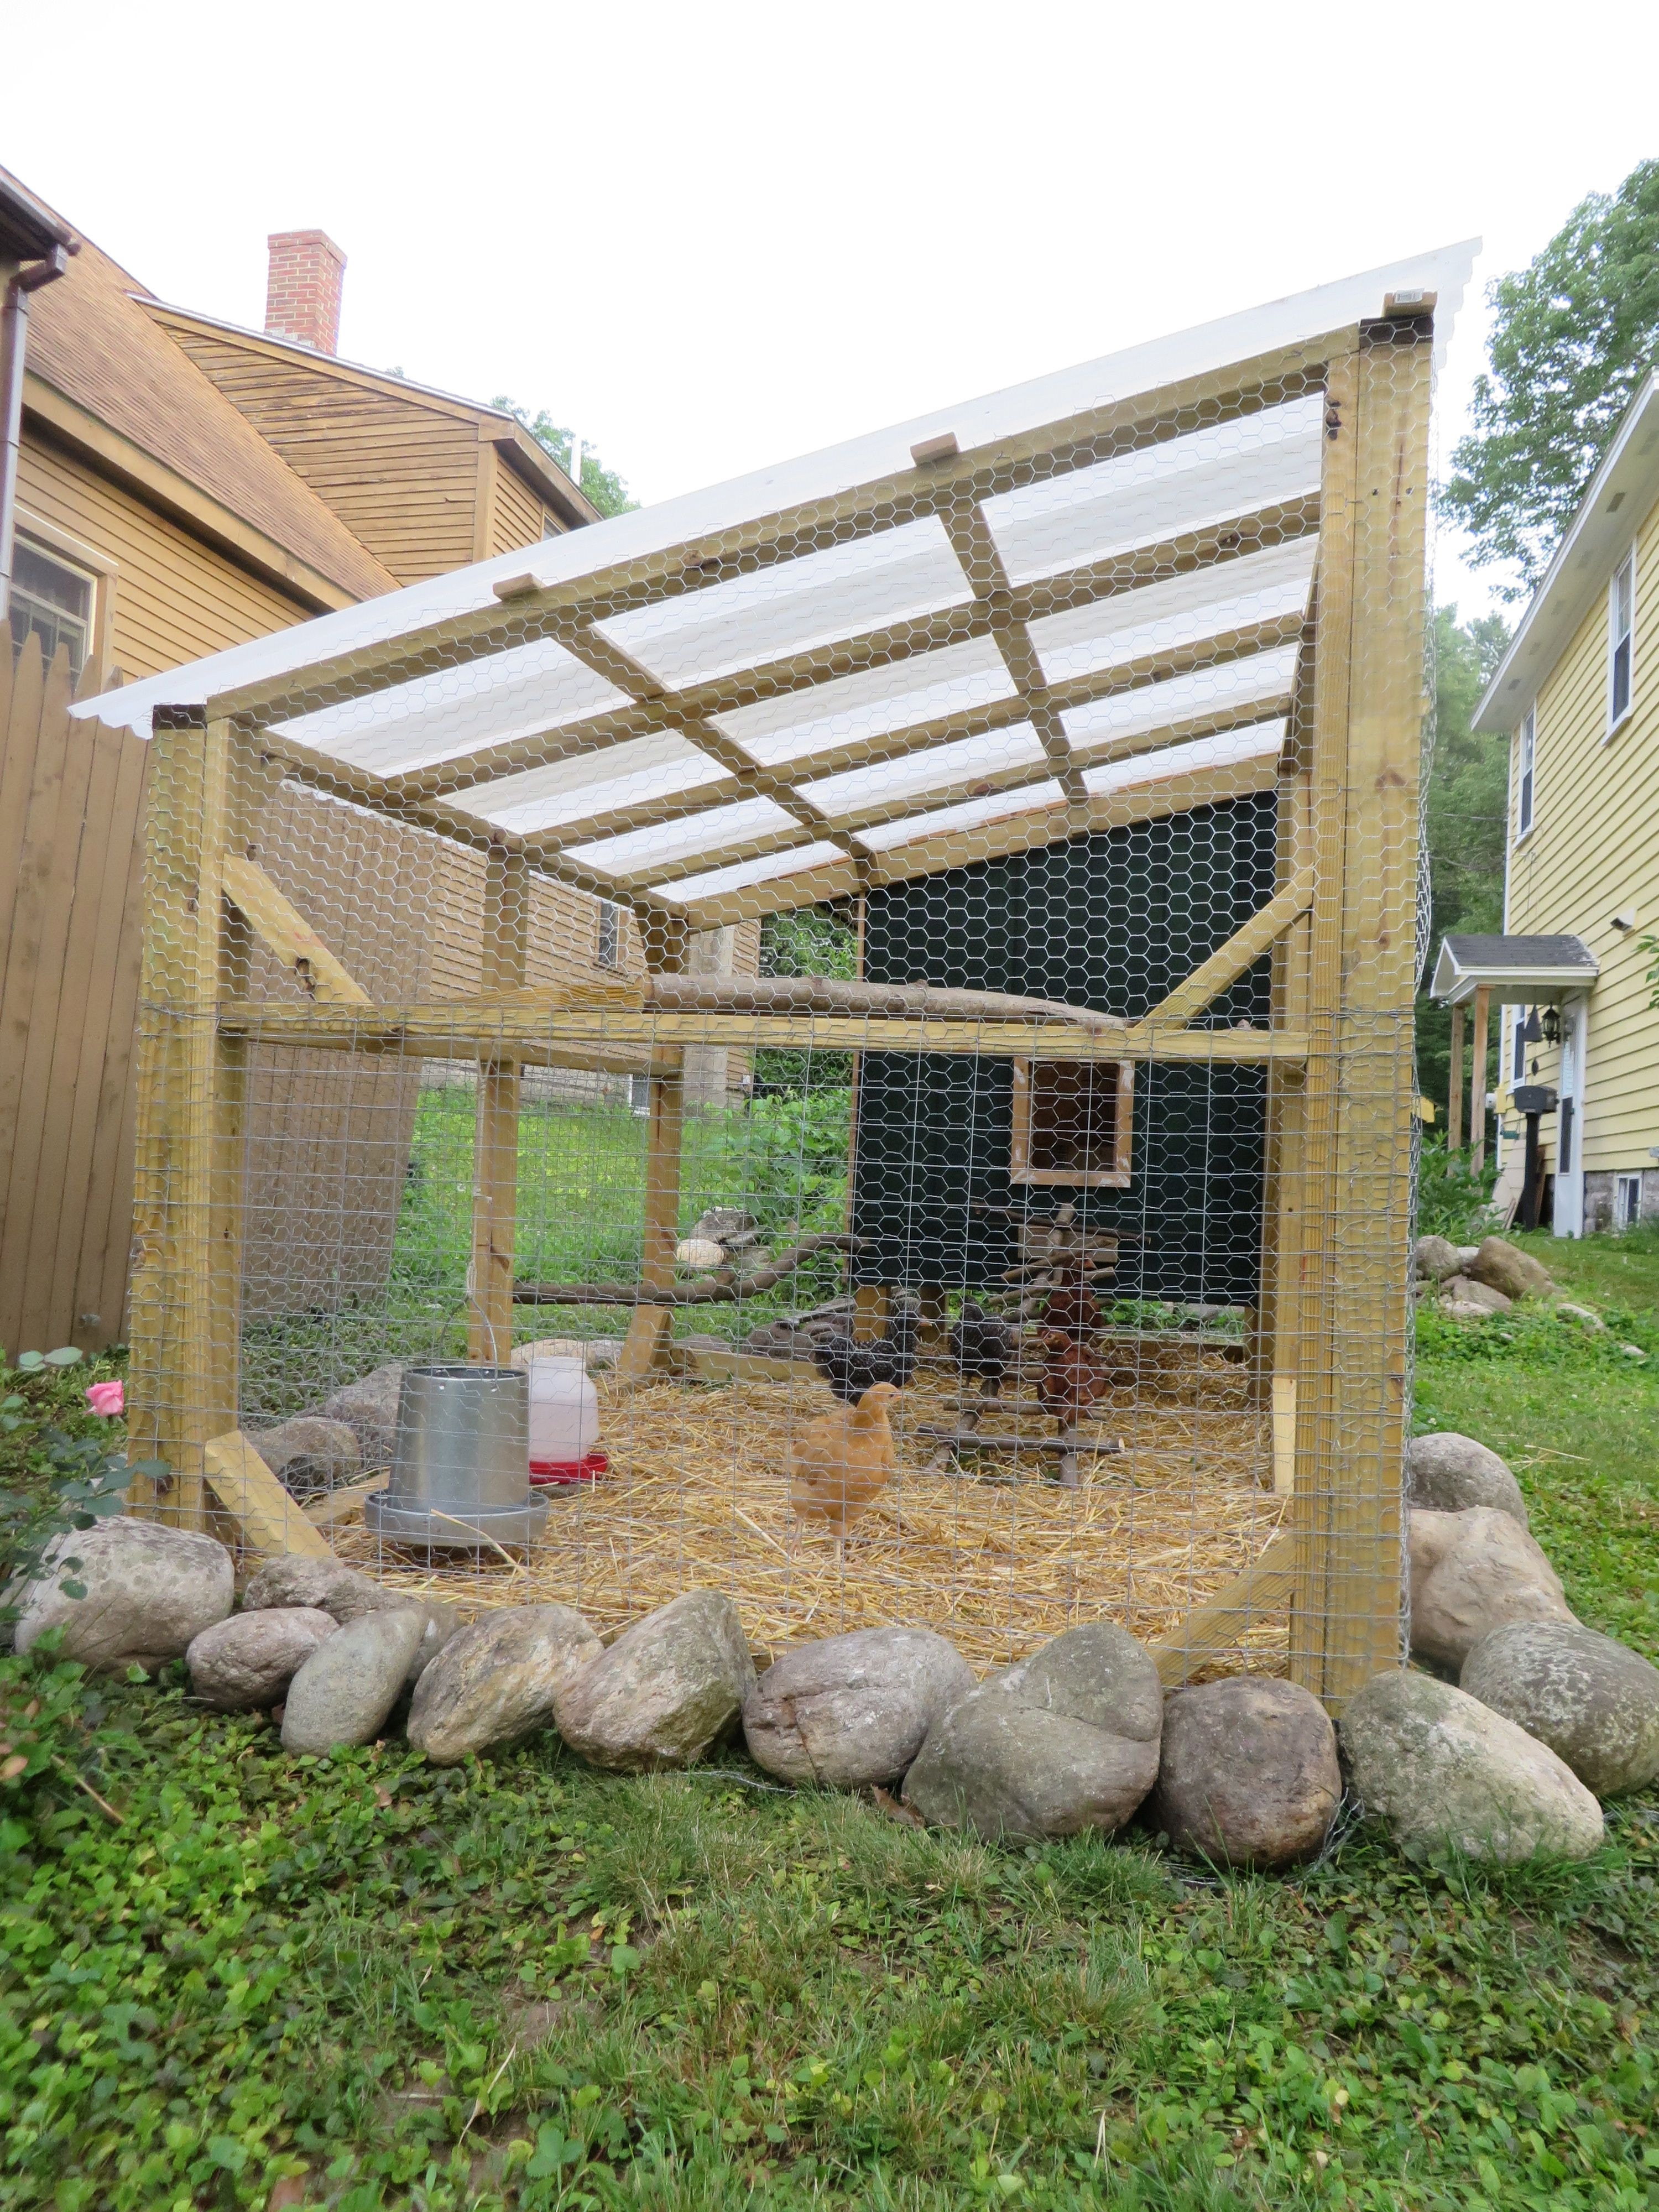 The Finally Completed Coop And Run Okay It Still Needs More Paint And Dividers Added To The Nes Chicken Garden Diy Chicken Coop Plans Backyard Chicken Coops Backyard chicken coop design plans